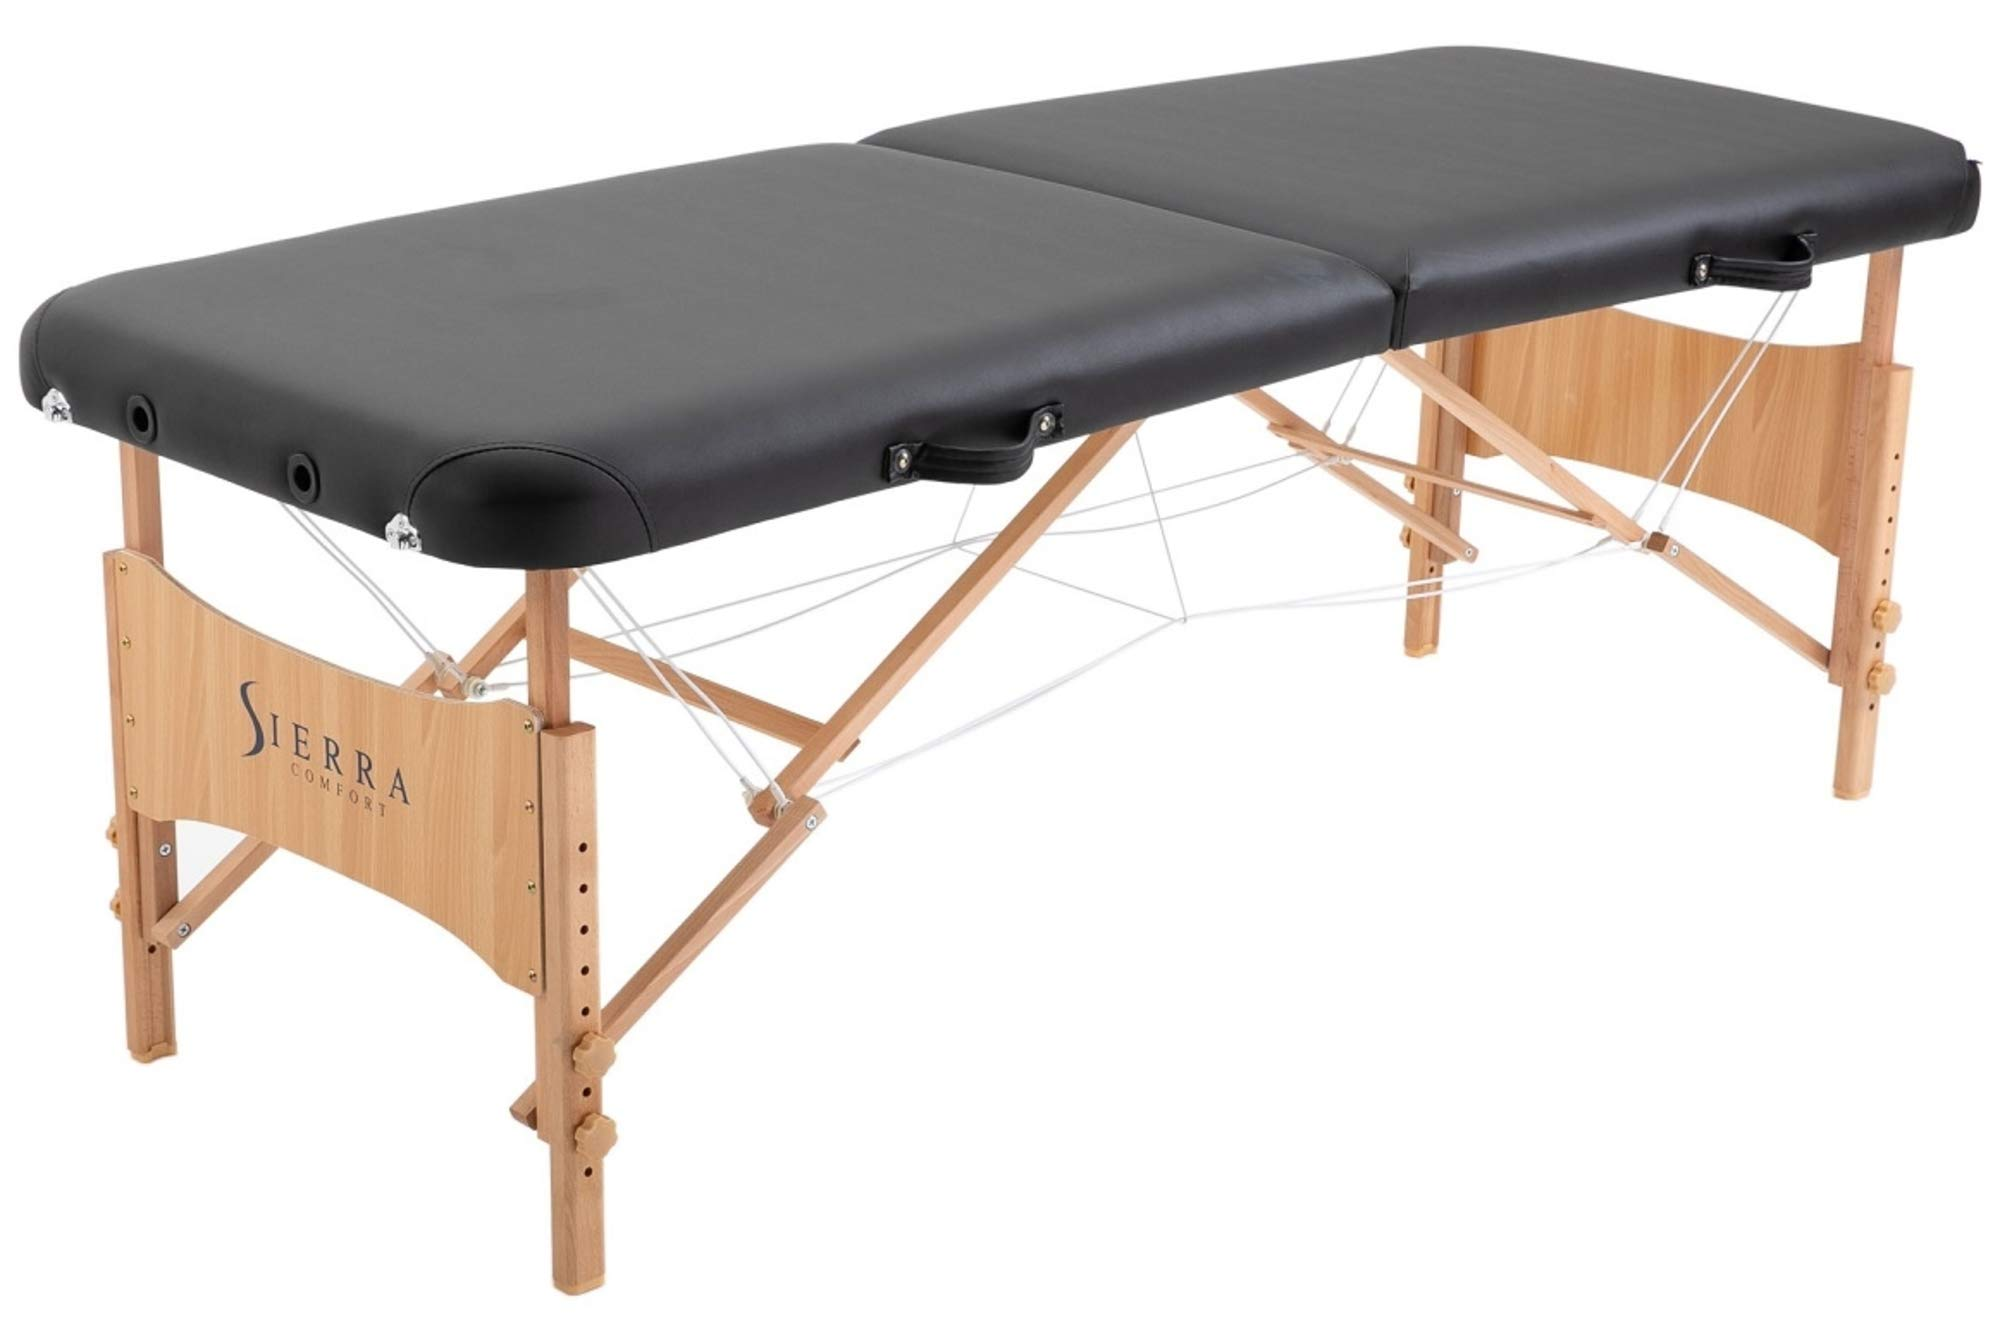 SierraComfort Basic Portable Massage Table, Black by SierraComfort